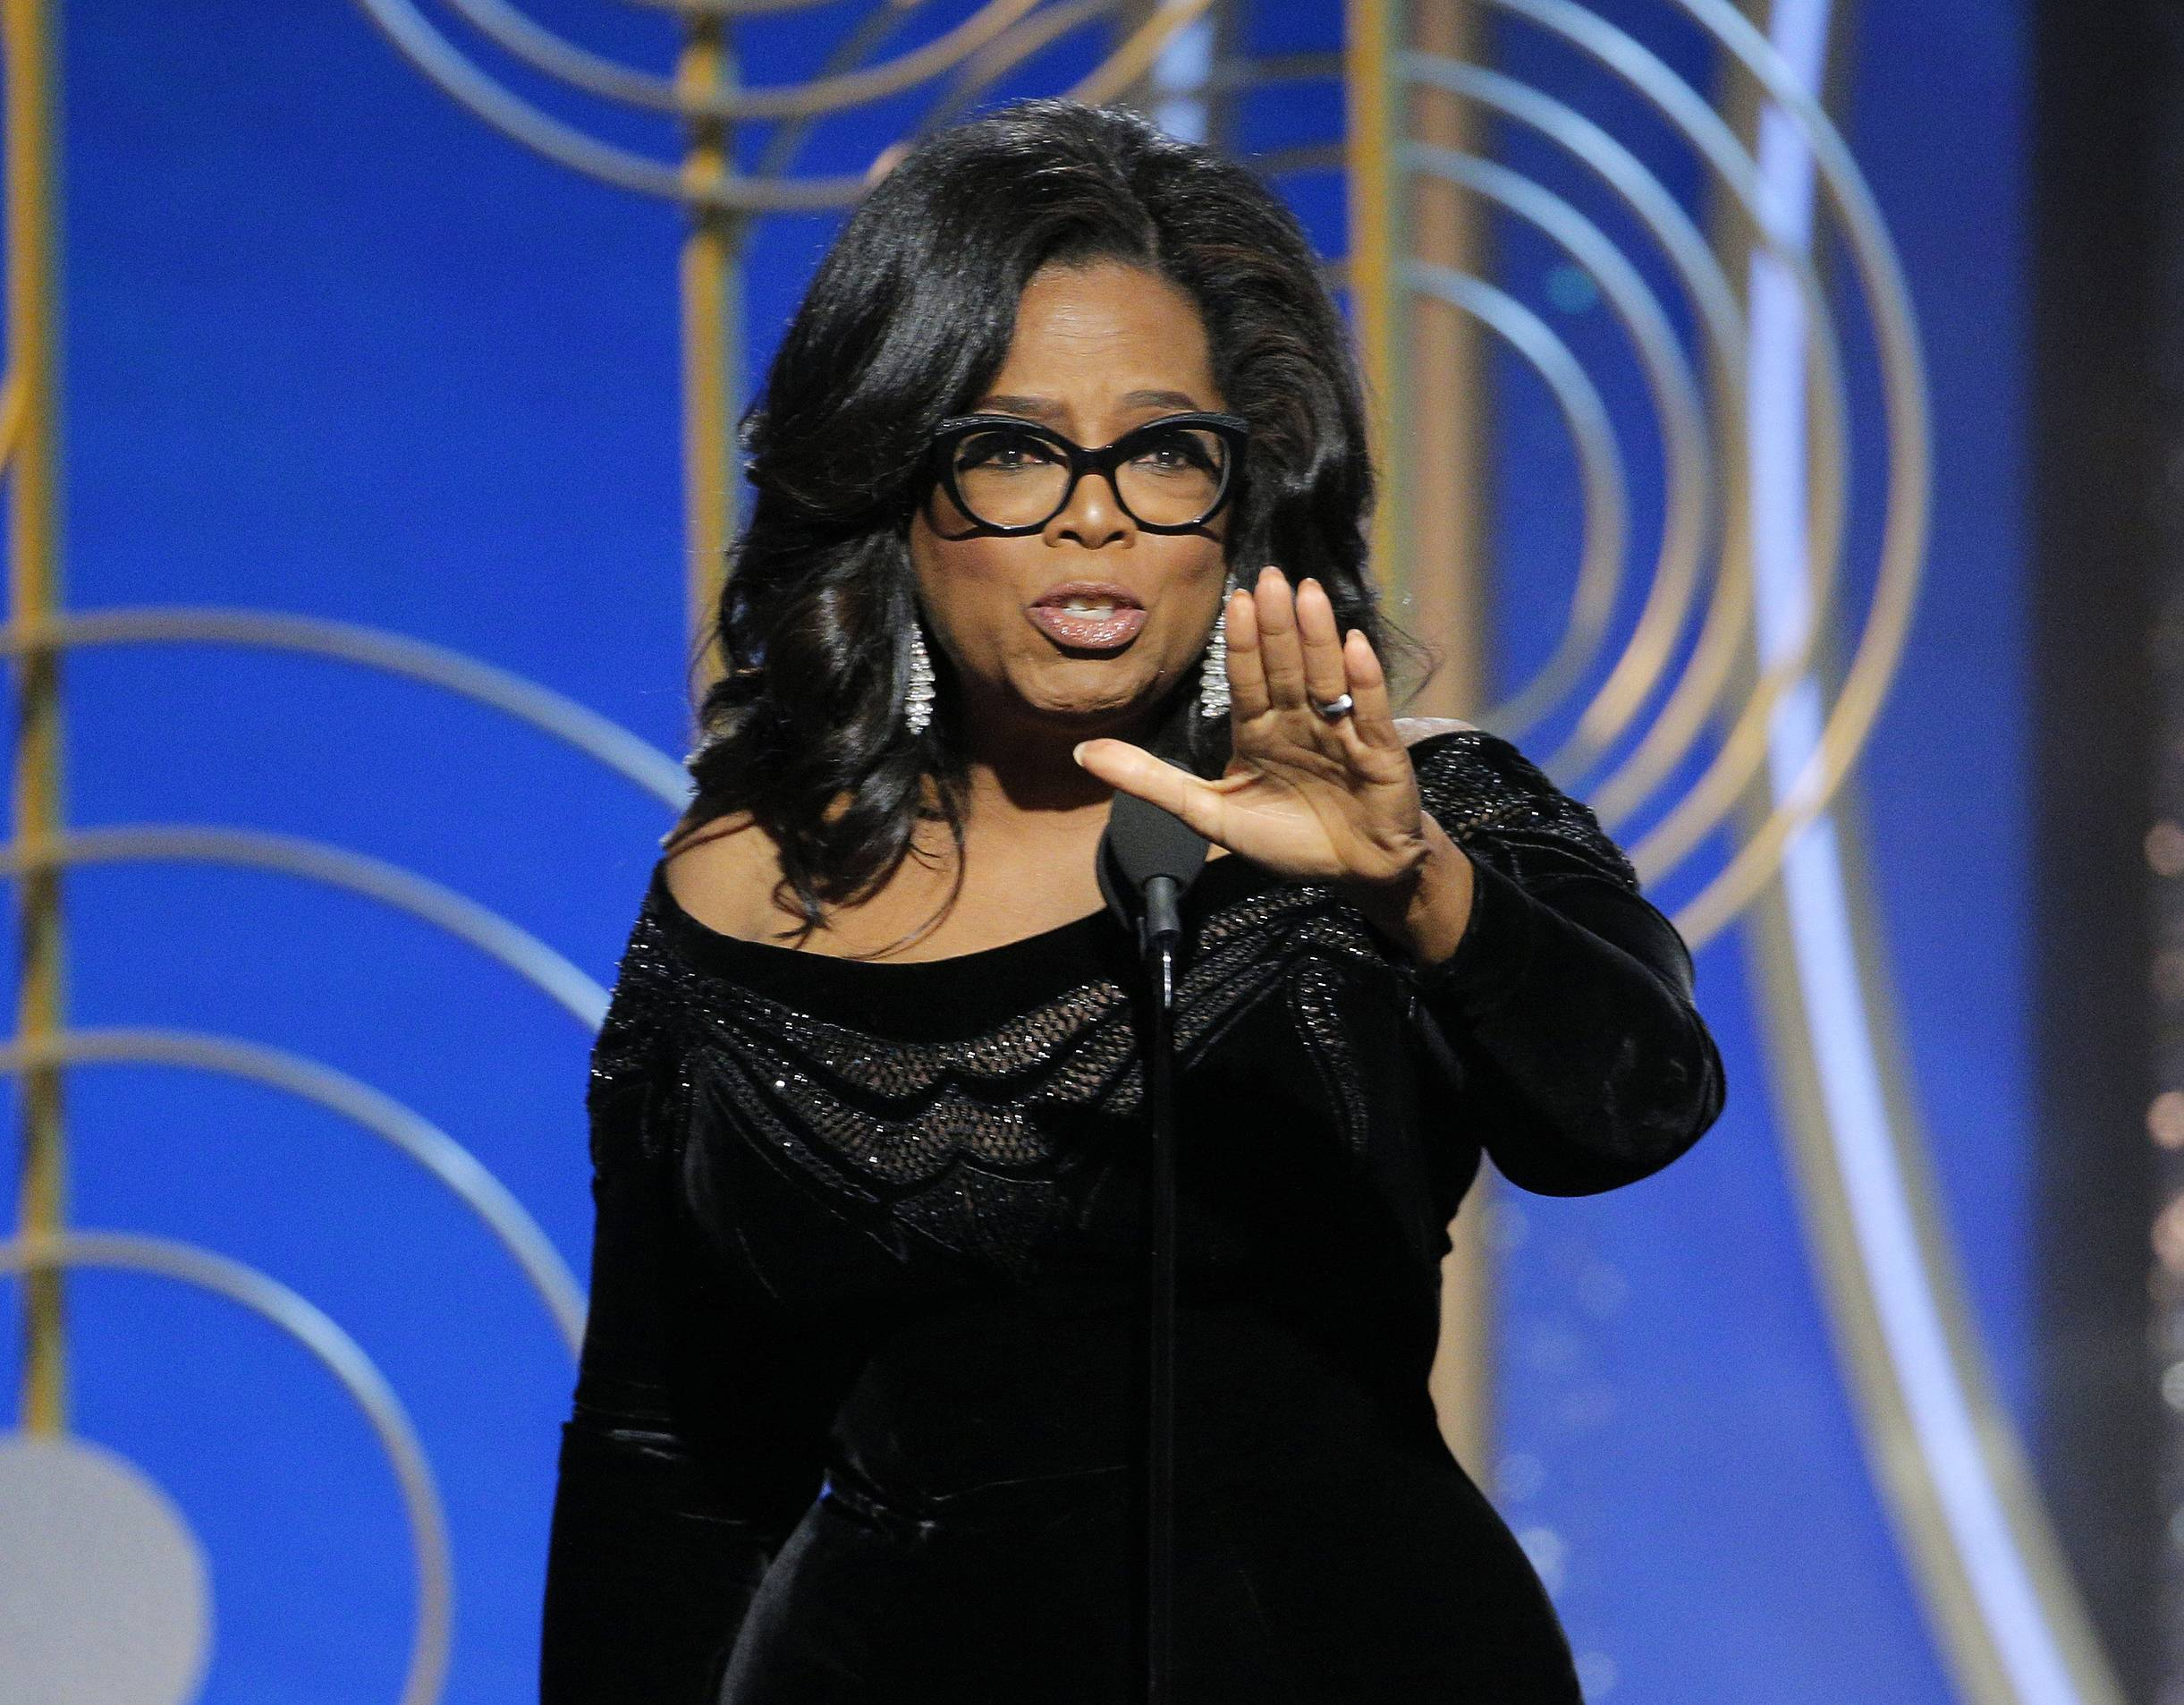 Oprah Winfrey accepts the Cecil B. DeMille Award on Sunday night at the 75th annual Golden Globe Awards in Beverly Hills, Calif.